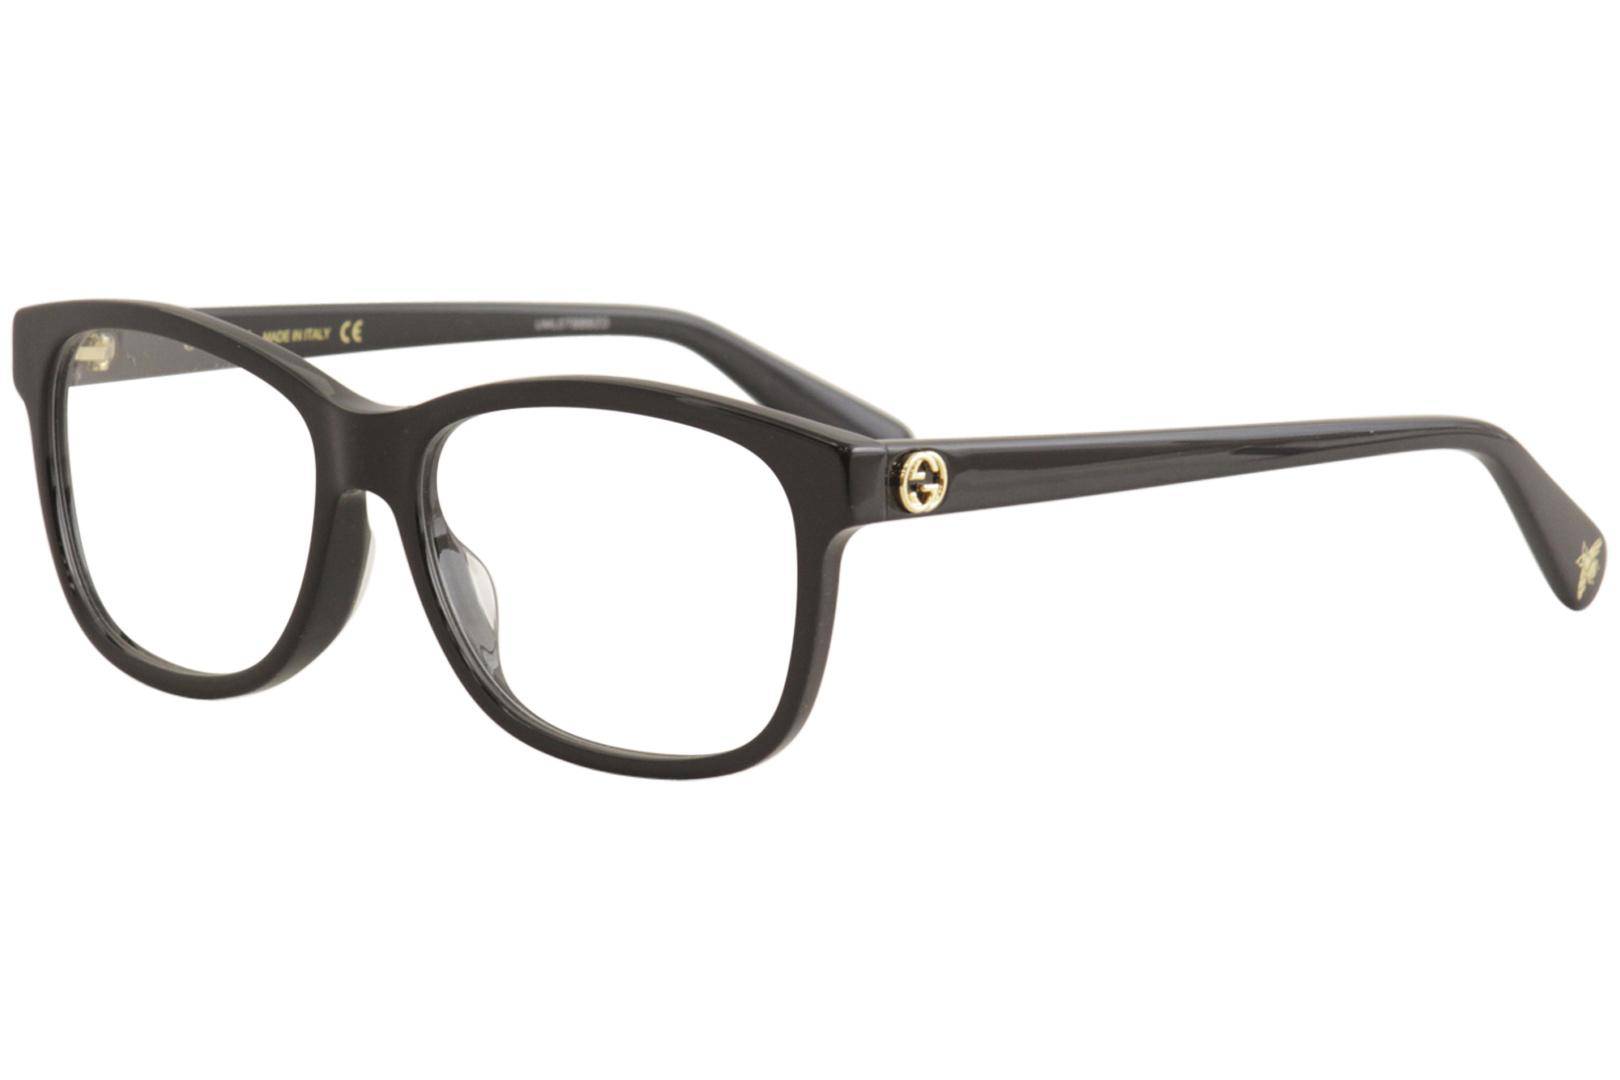 c02d83a86e25 Gucci Women's Eyeglasses GG0374OA GG/0374/OA Full Rim Optical Frame